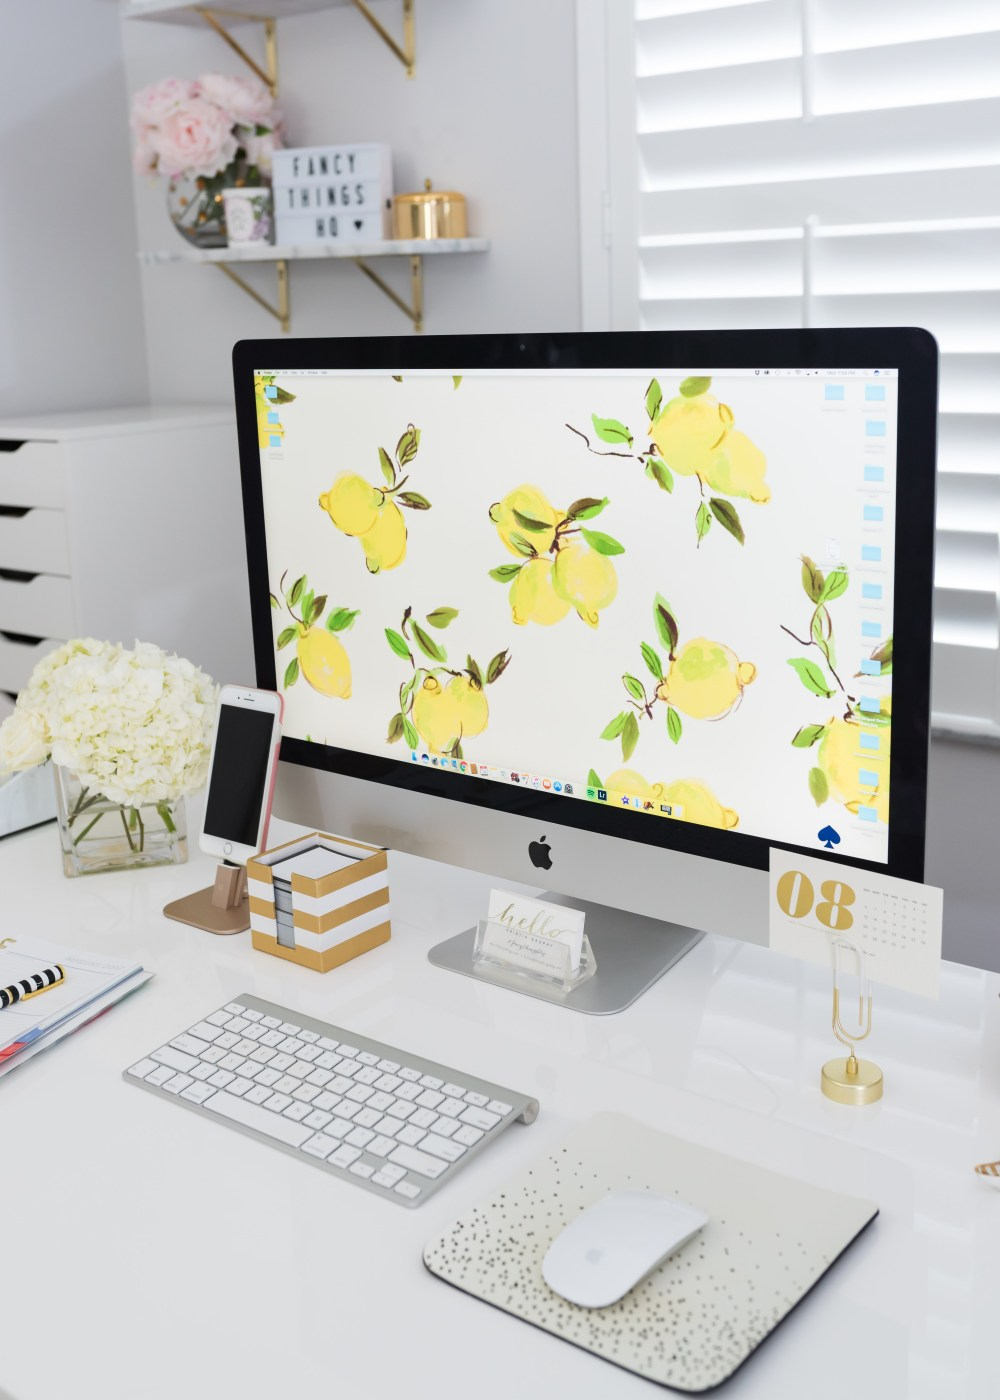 cute office.  Cute I Hope This Post Inspires You Whether Youu0027re Back To School Just Wanting  Stay Organized Or Creating A Home Office Space Of Your Own For Cute Office